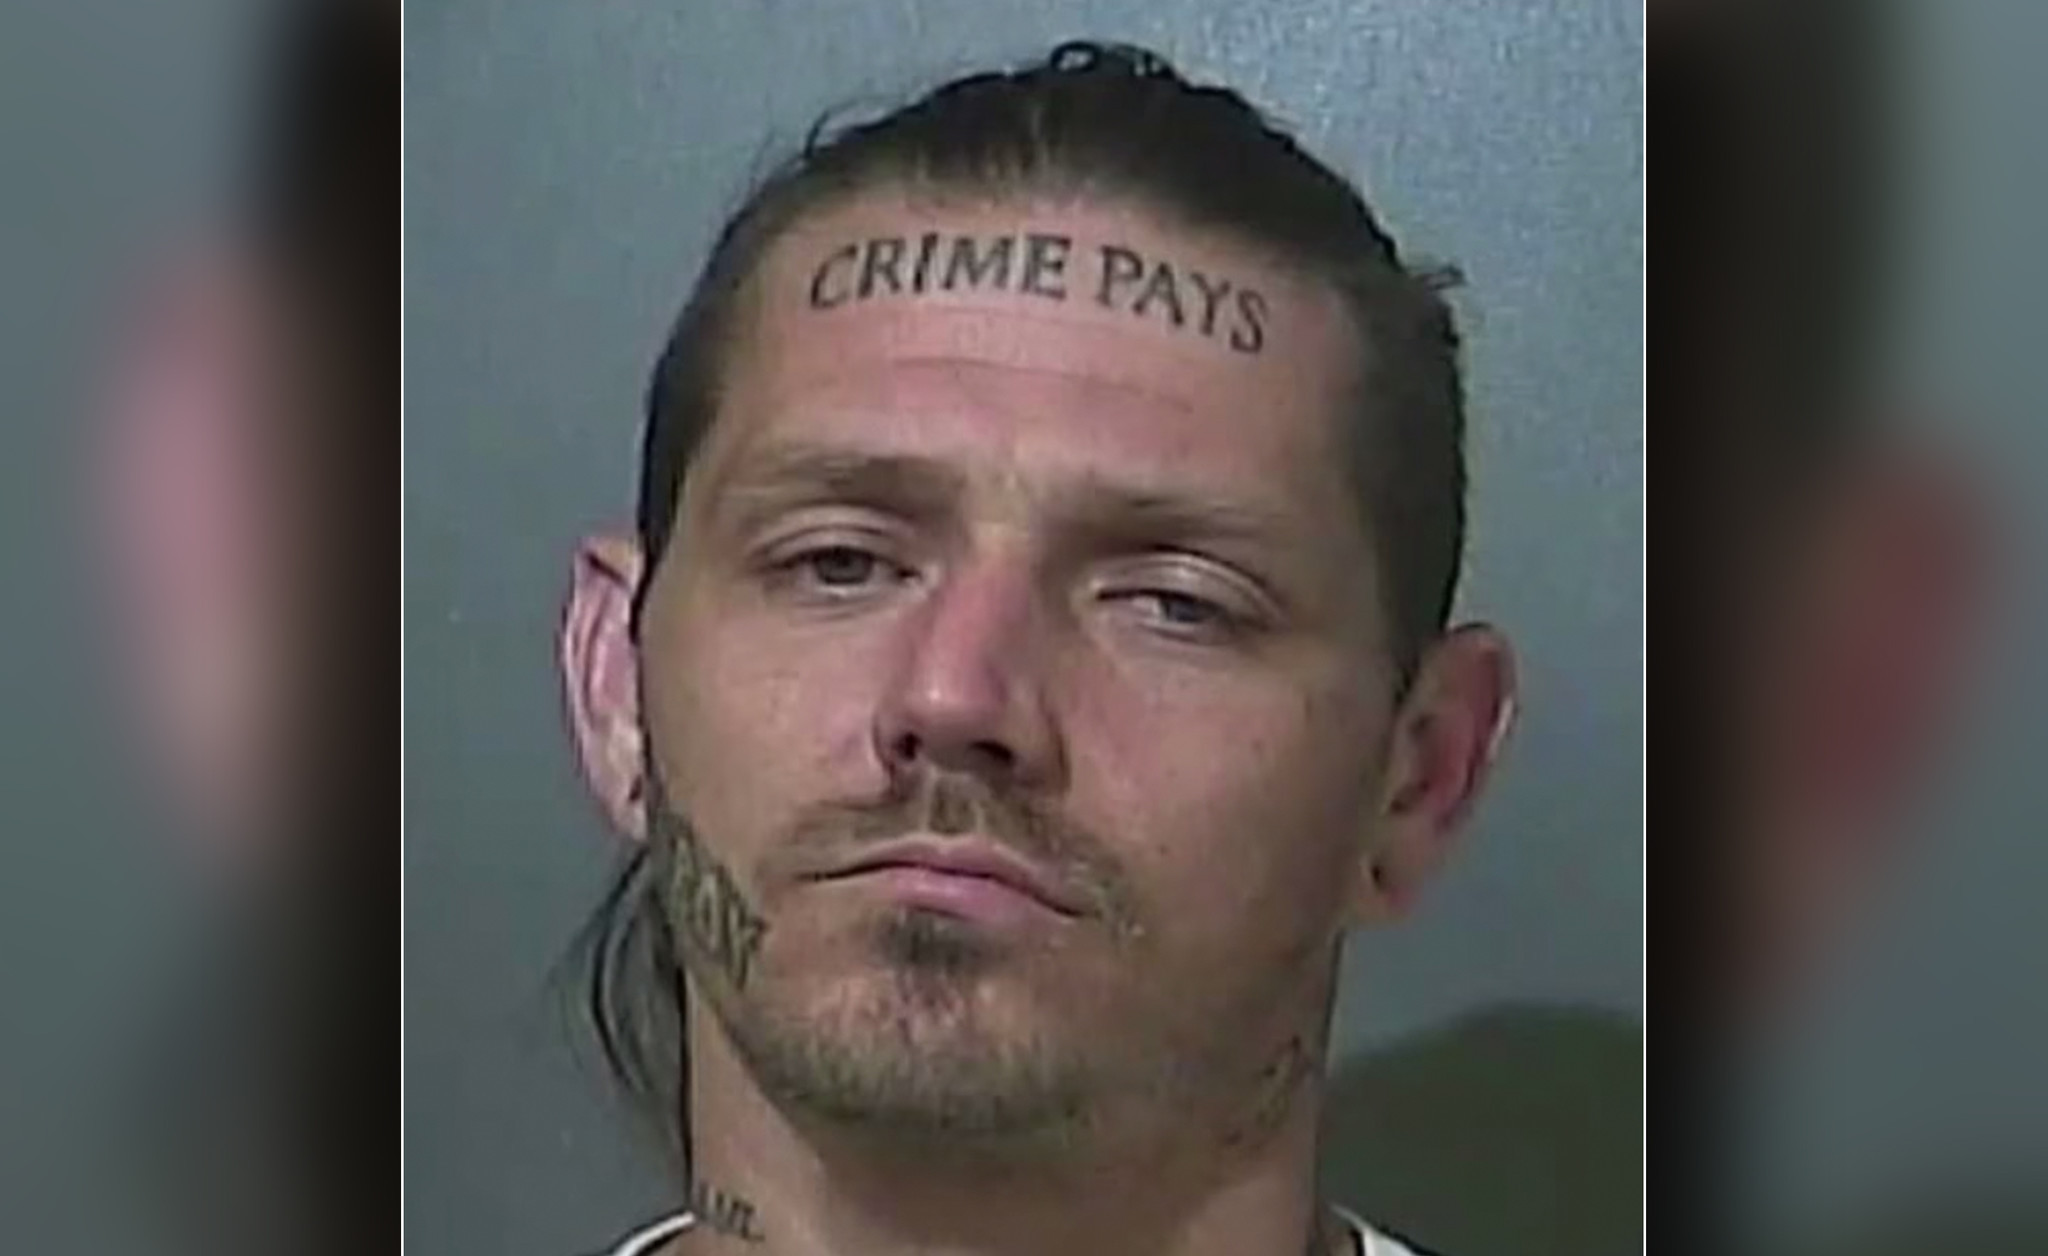 Indiana cops bust man with 'Crime Pays' forehead tattoo after car chase. Again.